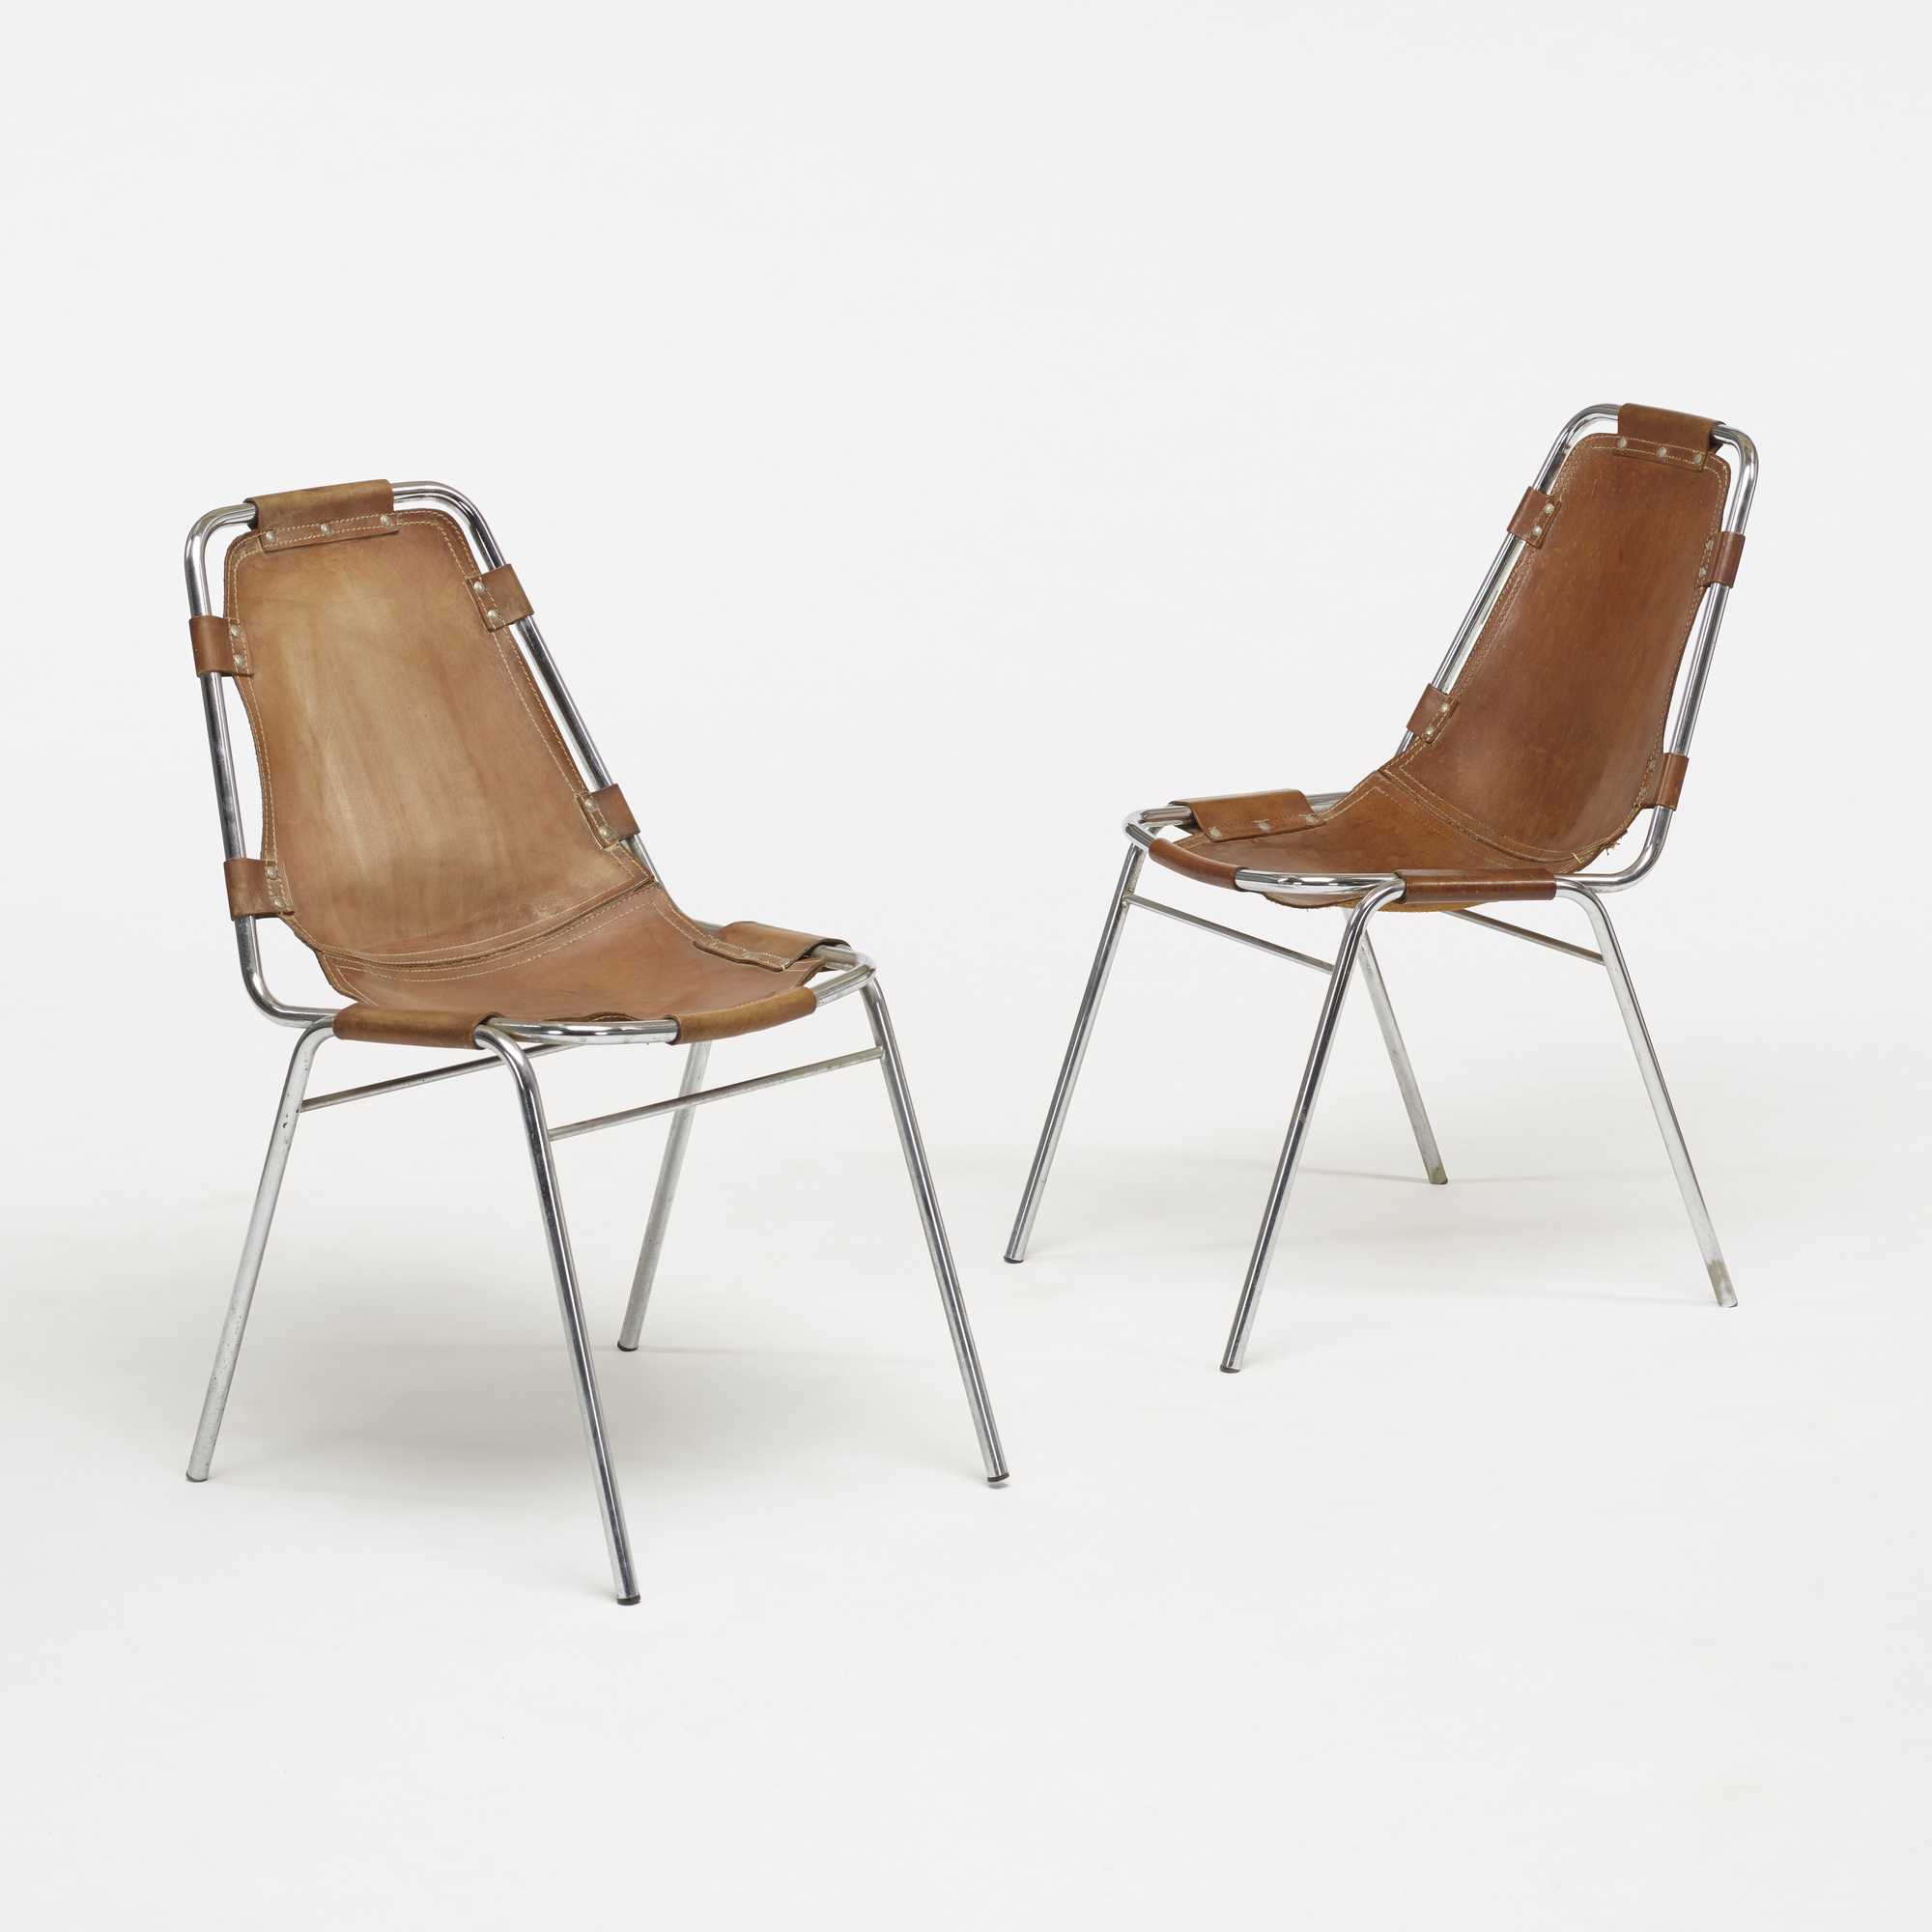 117: Charlotte Perriand / dining chairs from Les Arcs, set of ten (4 of 5)